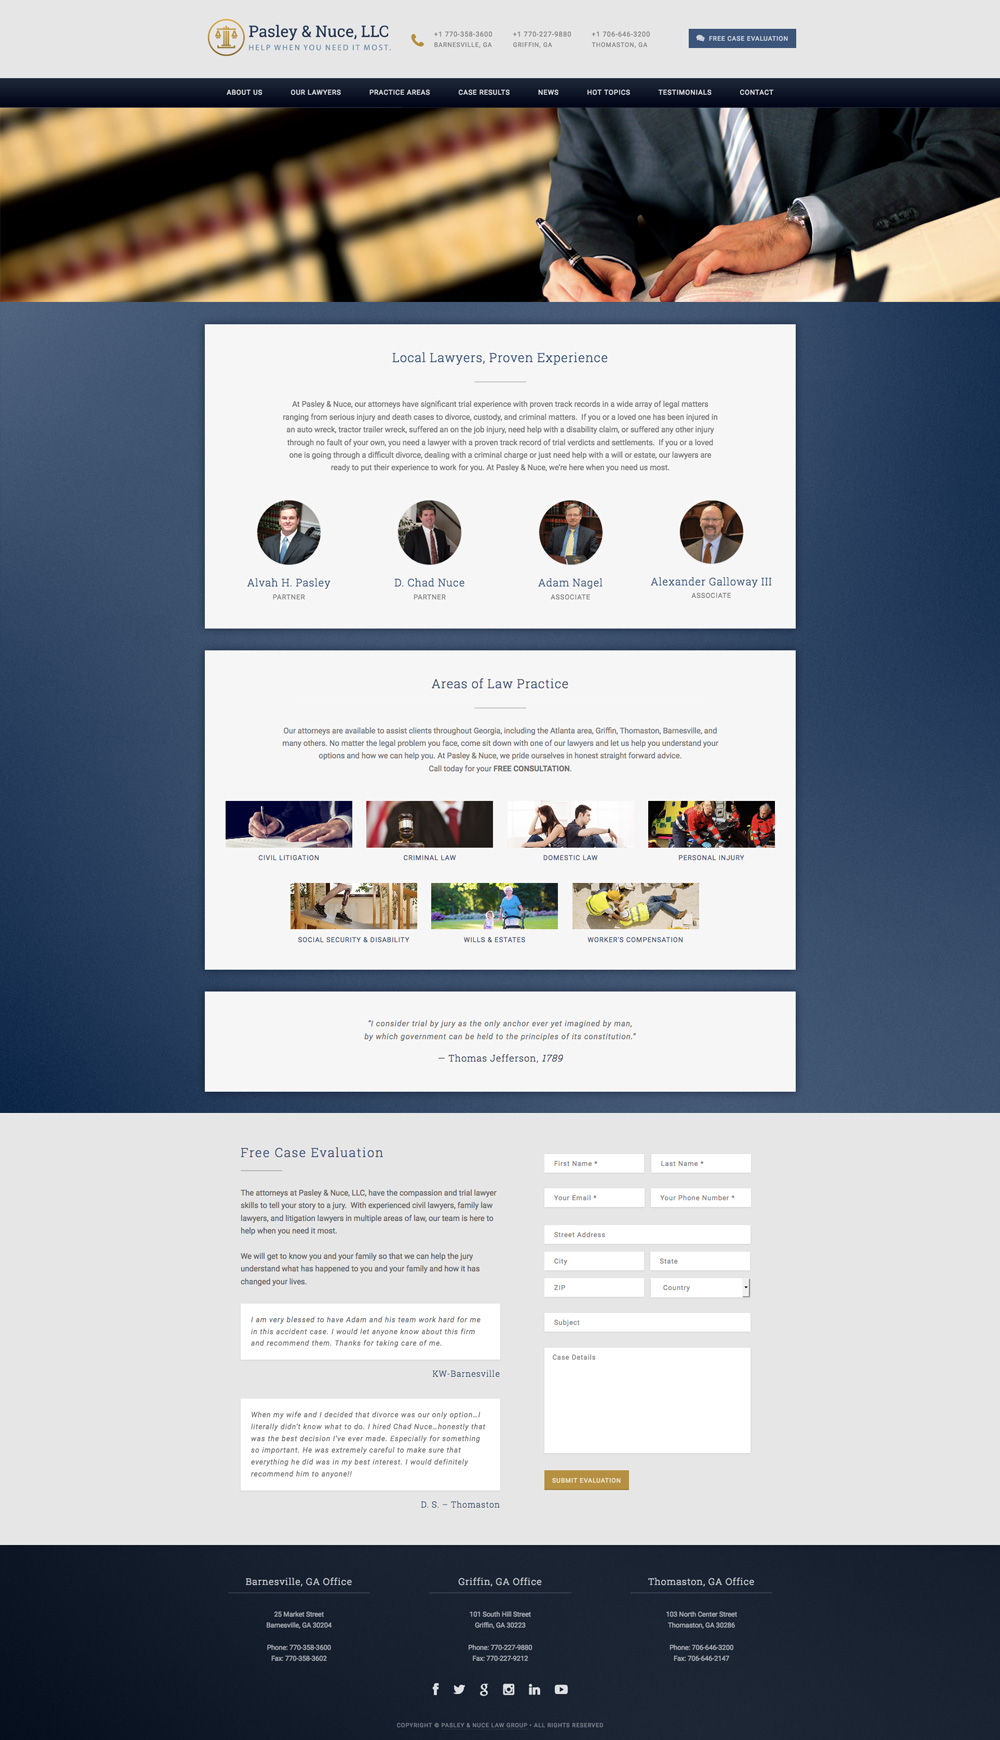 Screenshot of Pasley & Nuce, LLC website home page